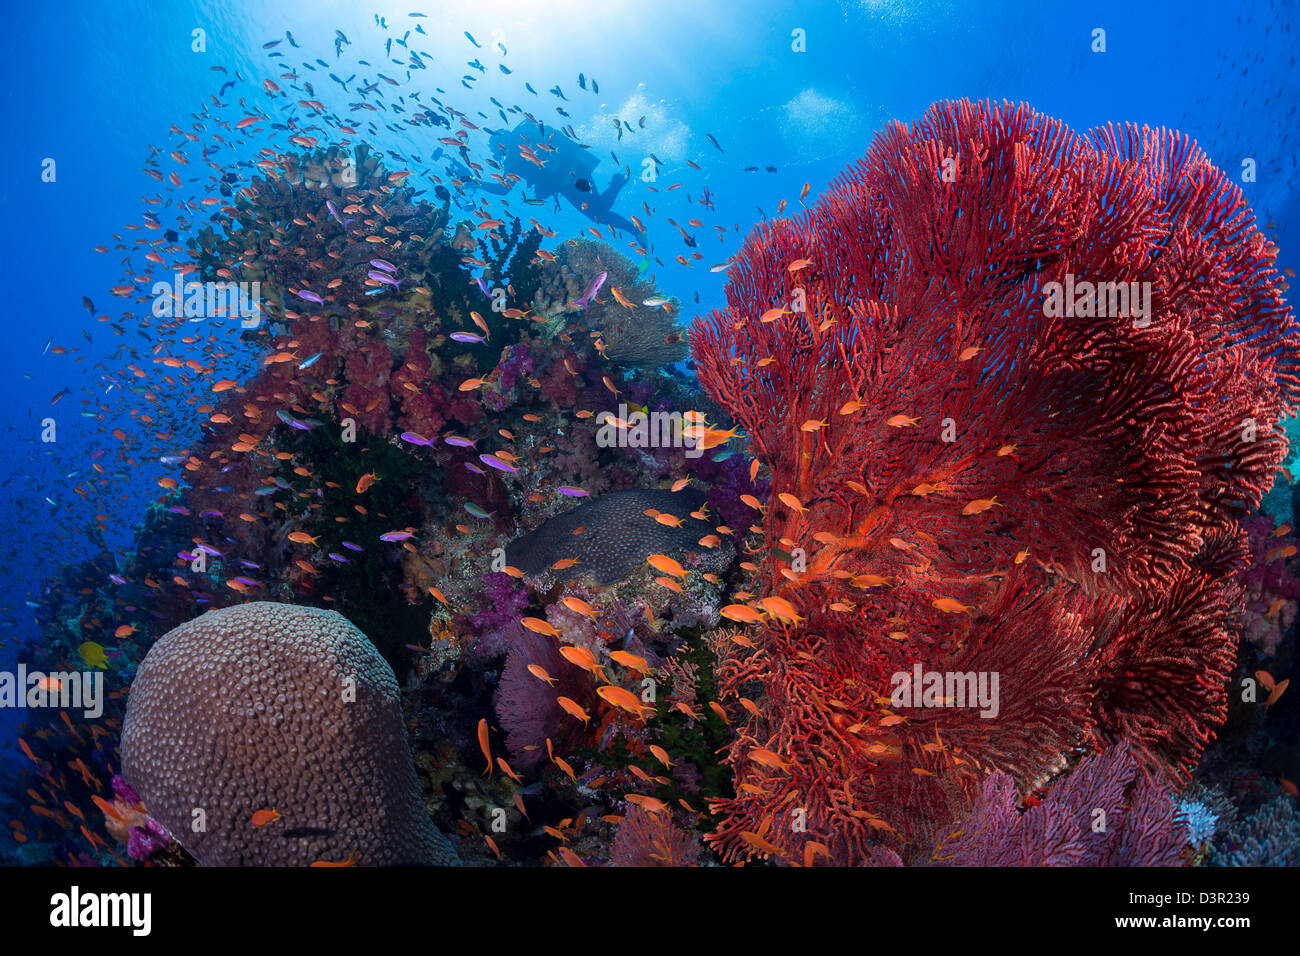 A diver with alconarian and gorgonian coral with schooling anthias dominate this Fijian reef scene. - Stock Image